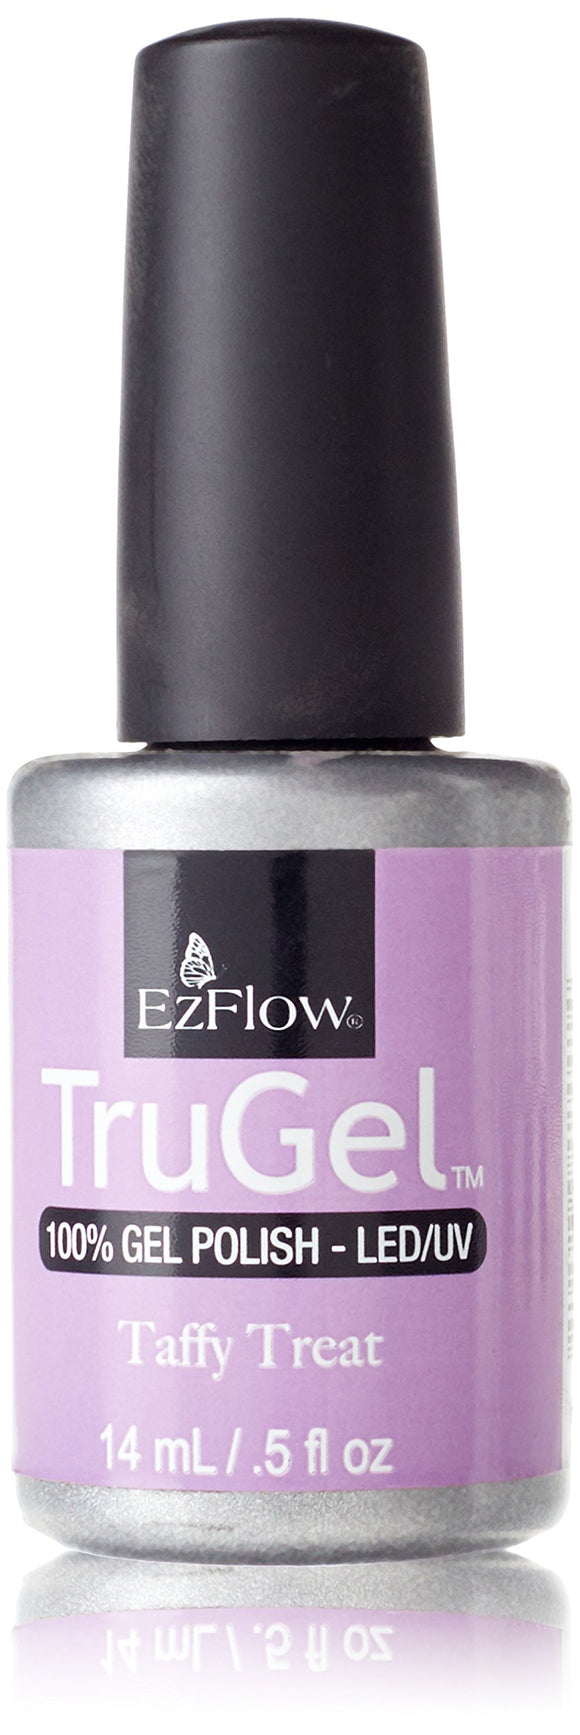 Ez Flow TruGel LED/UV Gel Polish - 14 mL (Taffy Treat - EZTG42441)